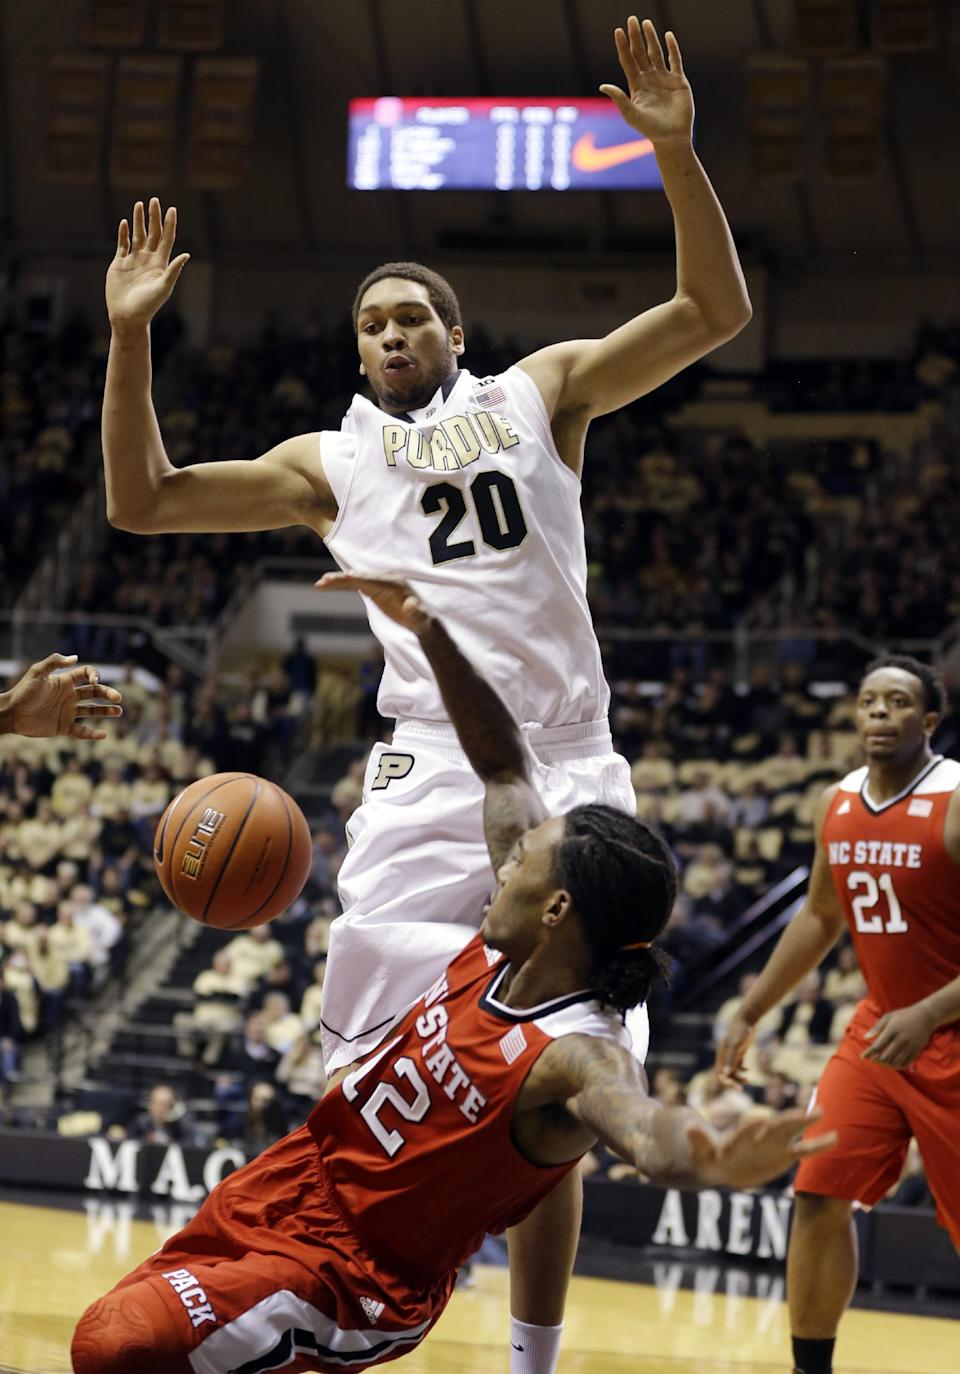 Purdue center A.J. Hammons, top, fouls North Carolina State guard Anthony Barber in the first half of an NCAA college basketball game in West Lafayette, Ind., Tuesday, Dec. 2, 2014. (AP Photo/Michael Conroy)